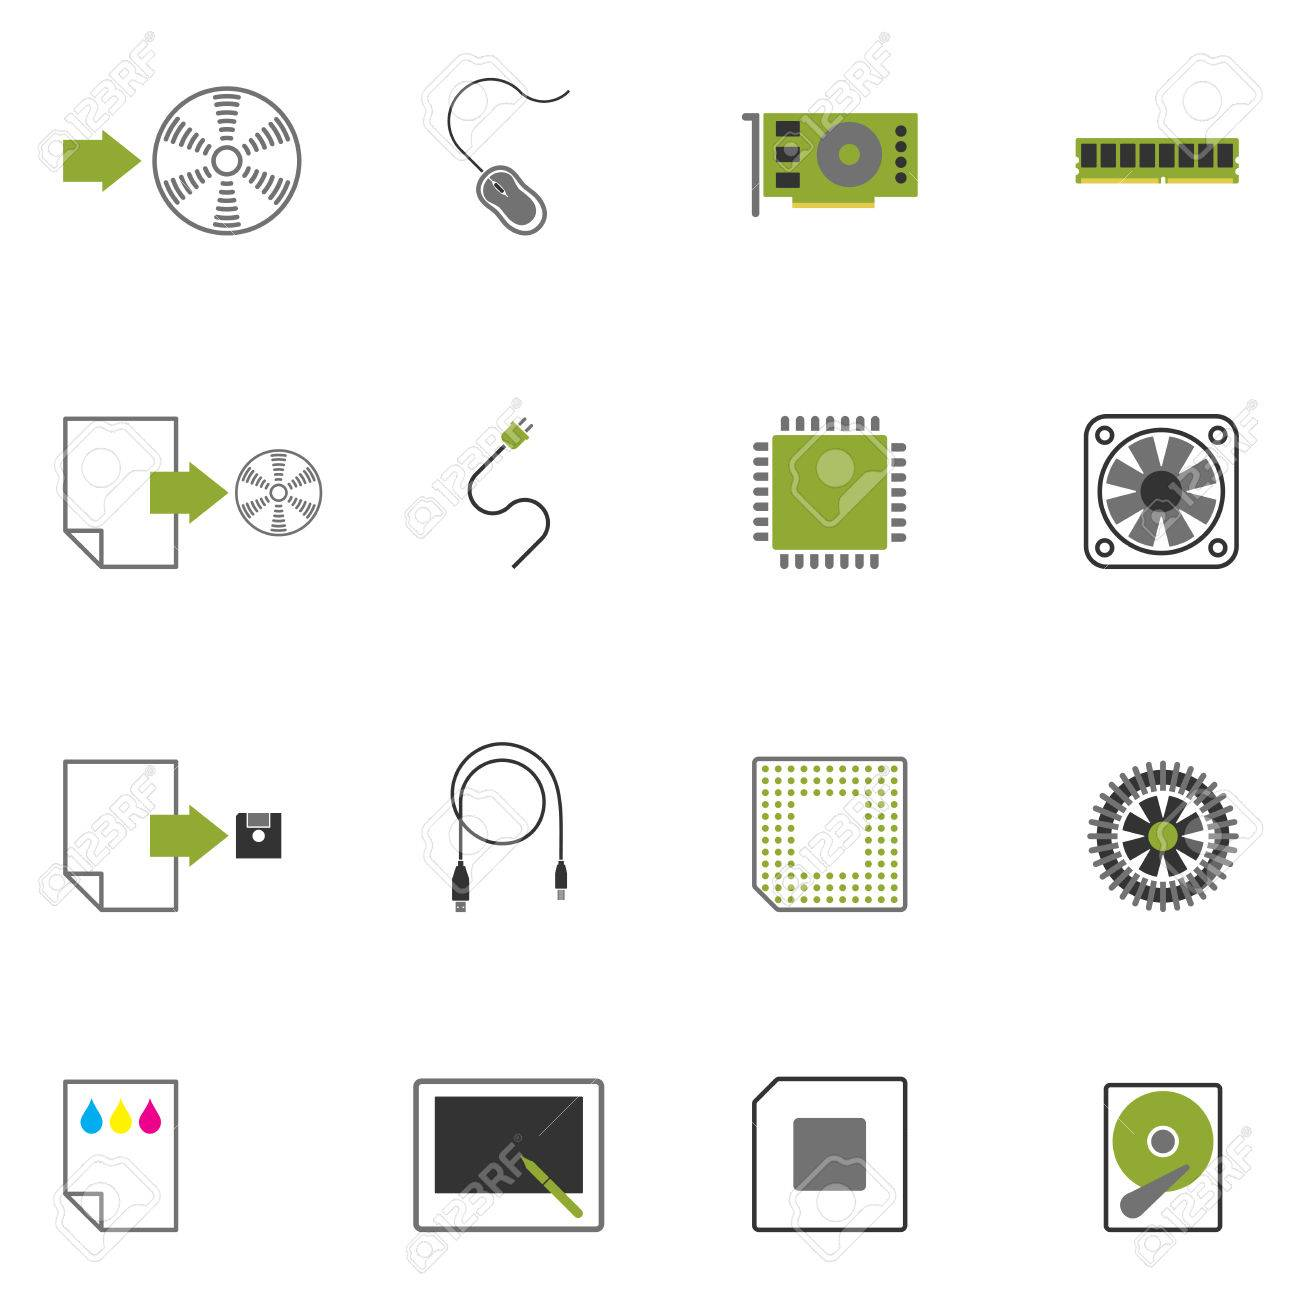 icons with images of computer accessories. - 7881046